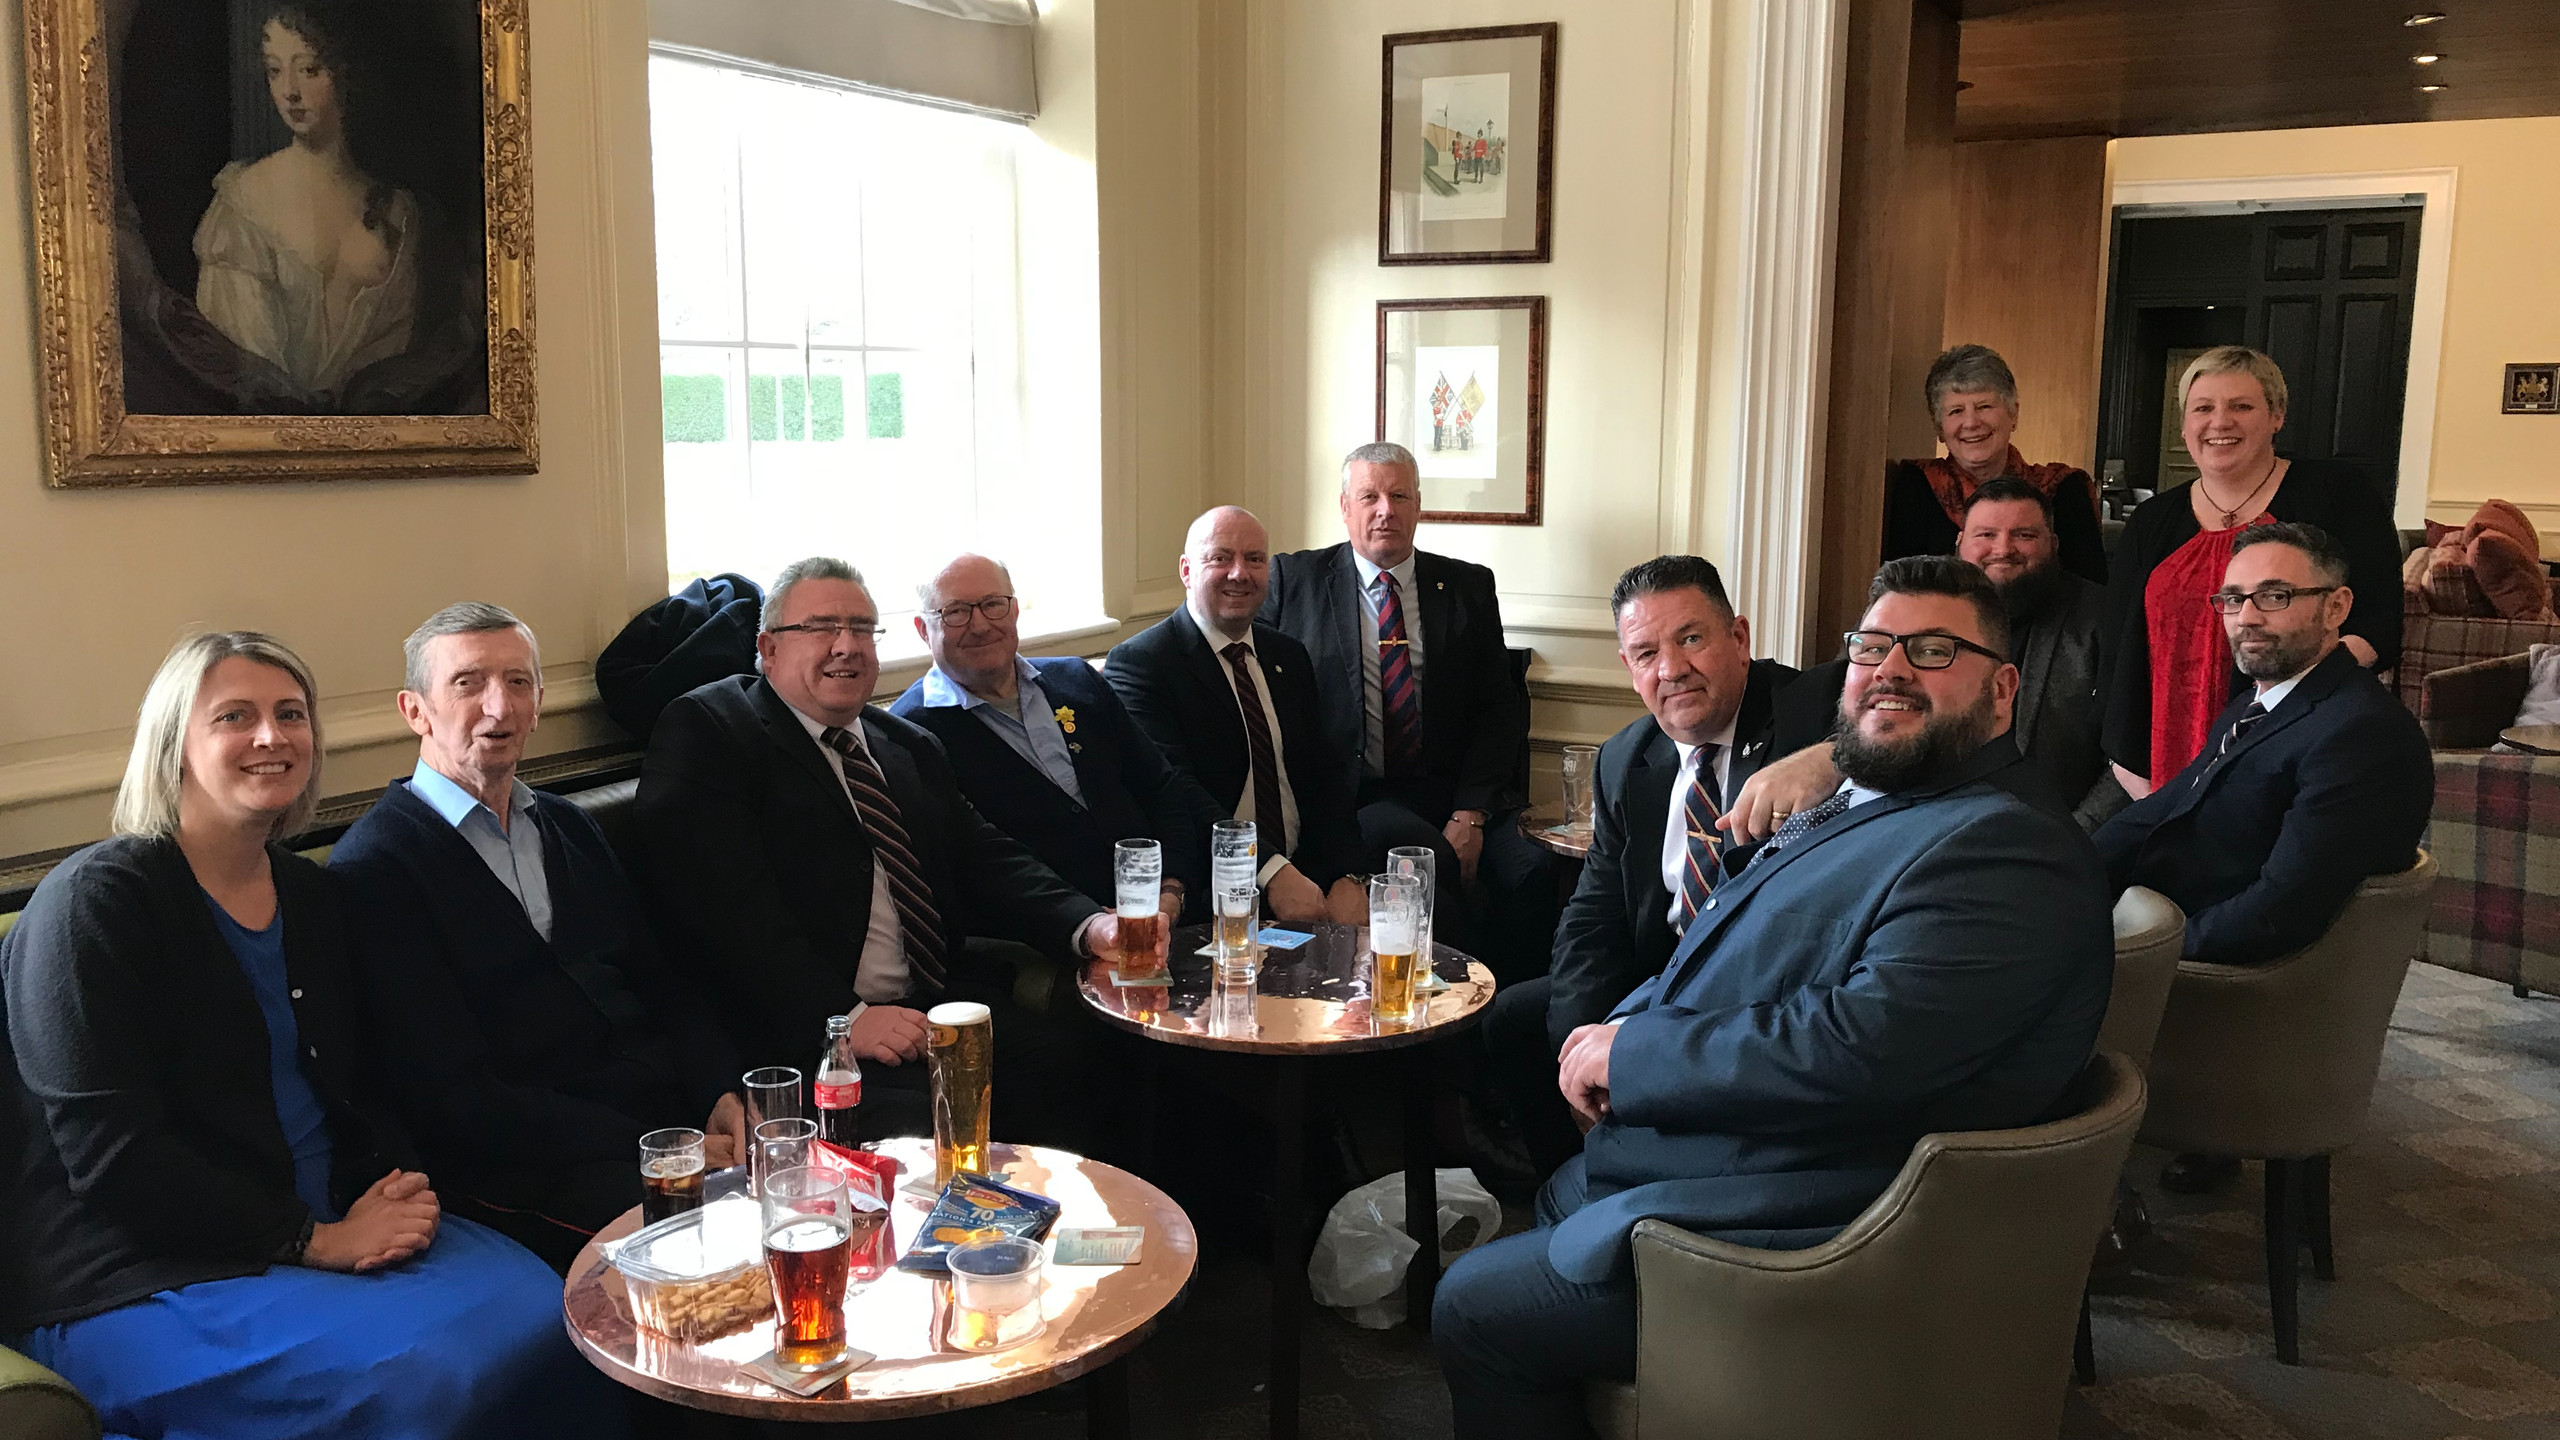 Gathered in the Pensioners Club